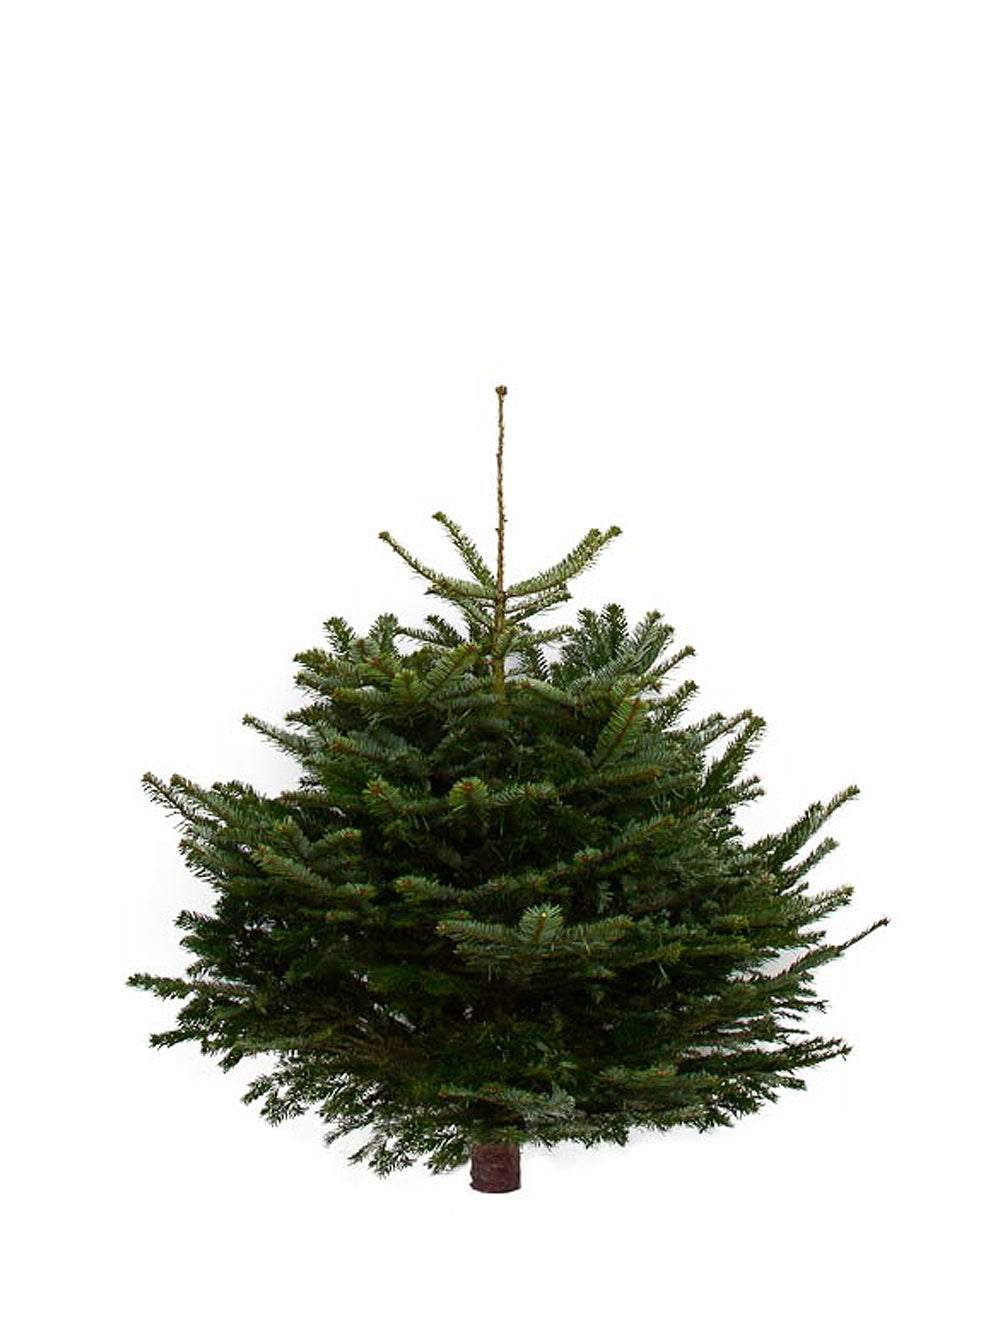 4ft Nordmann Fir Christmas Tree from Pines and Needles